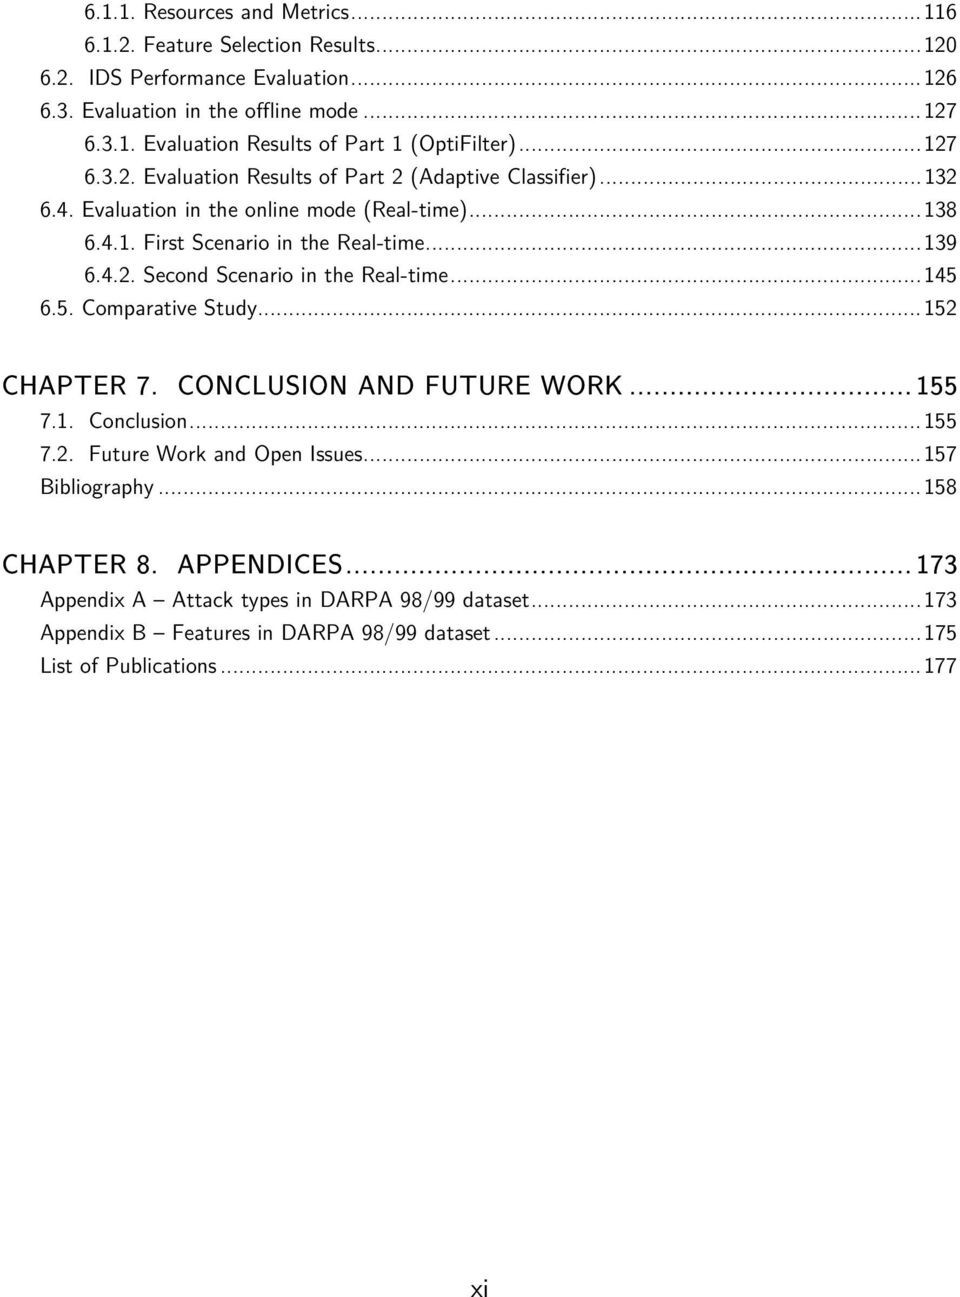 .. 145 6.5. Comparative Study... 152 CHAPTER 7. CONCLUSION AND FUTURE WORK... 155 7.1. Conclusion... 155 7.2. Future Work and Open Issues... 157 Bibliography... 158 CHAPTER 8. APPENDICES.